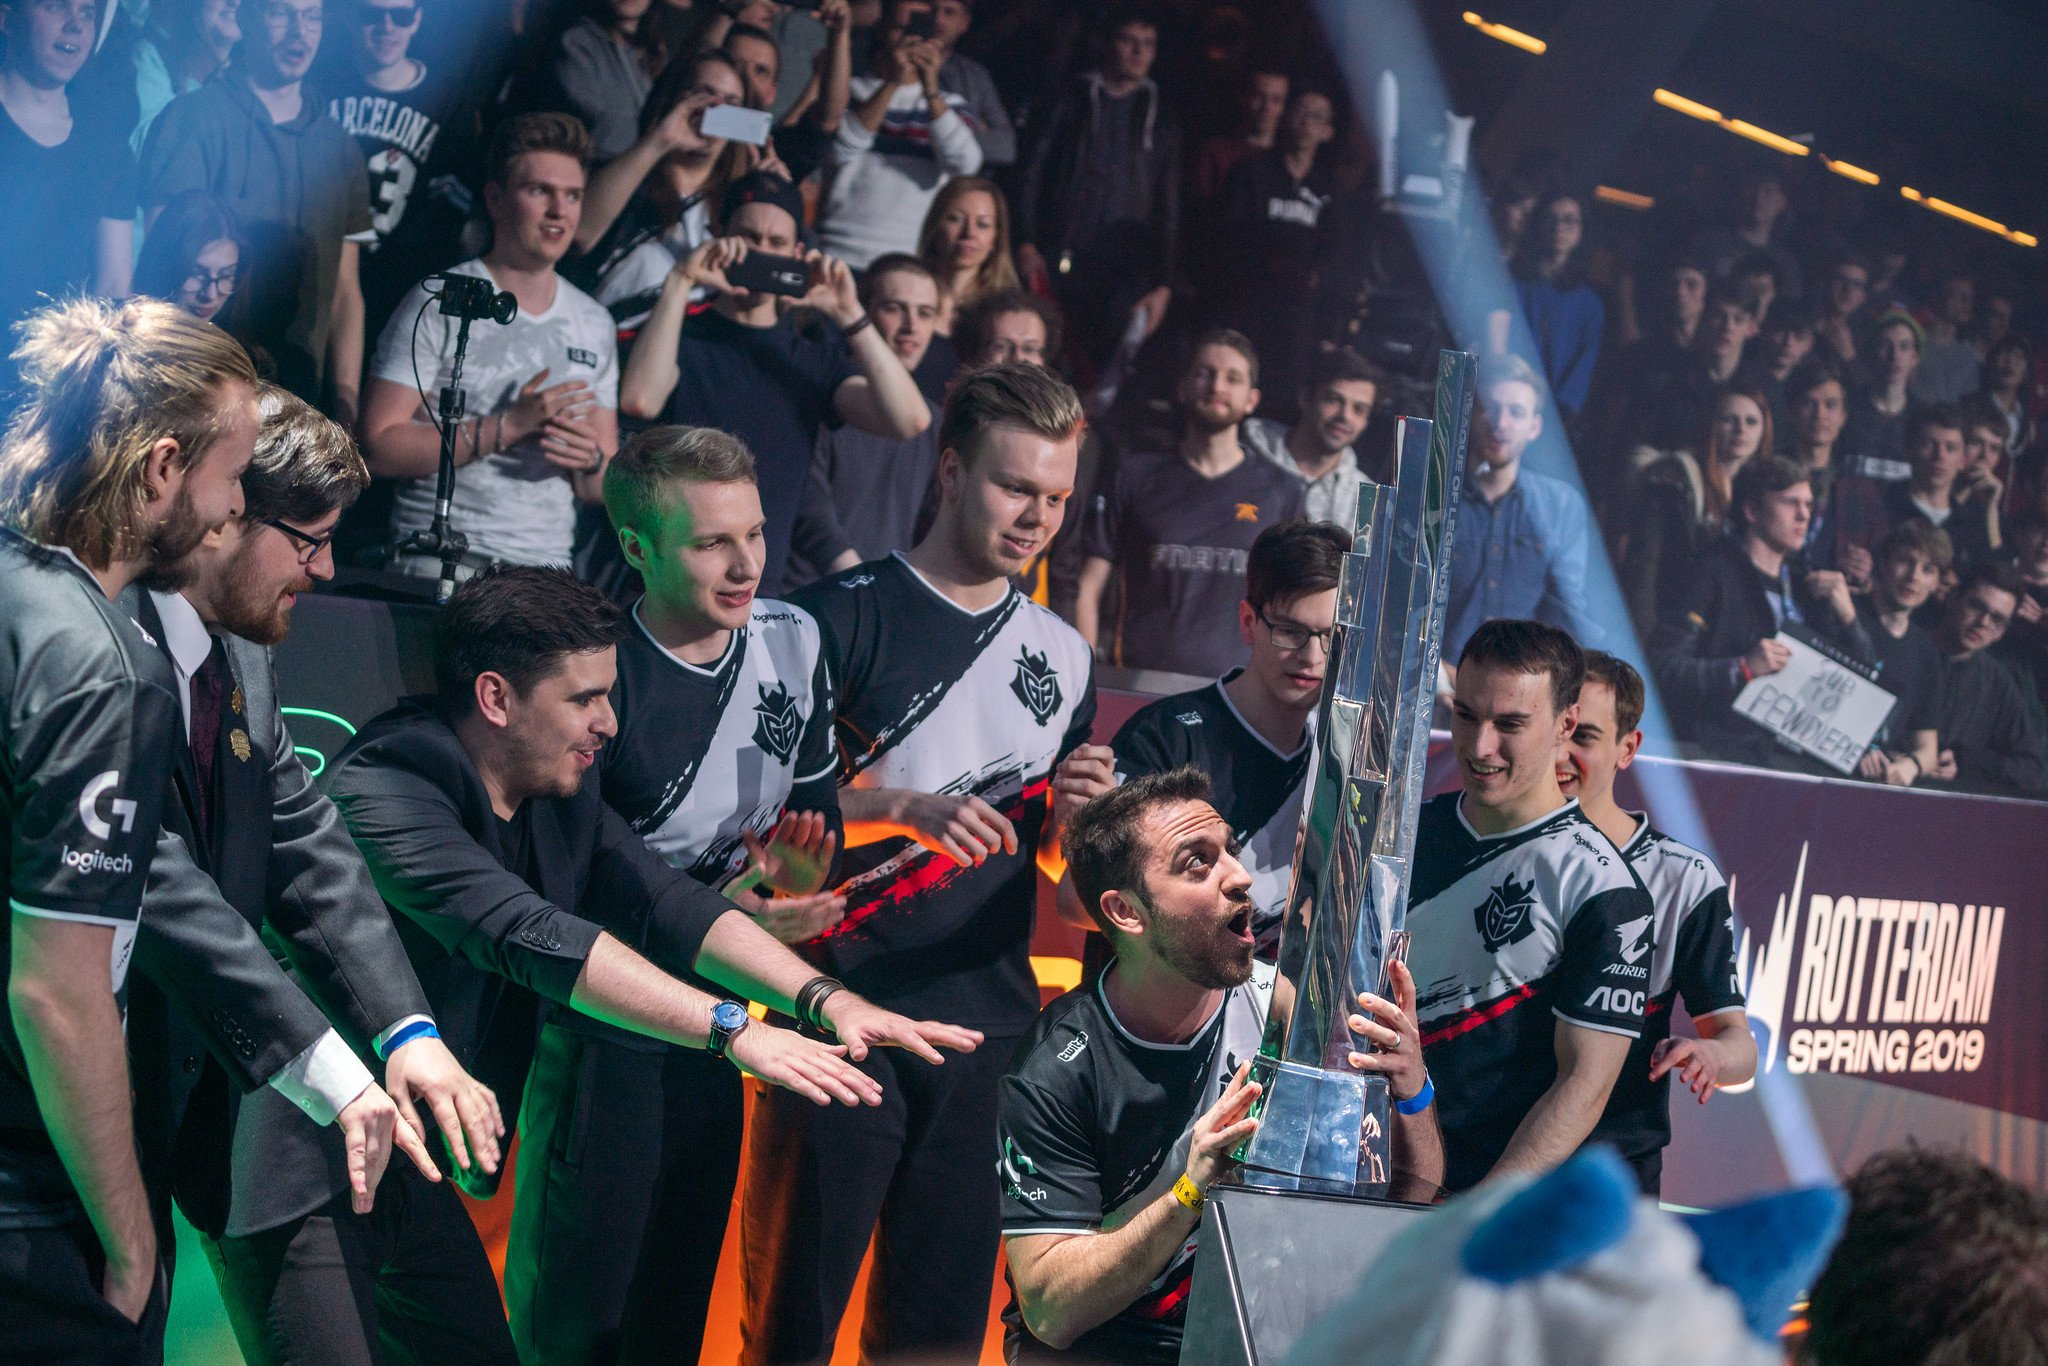 We Just Know We're Better' Says G2 Esports' Founder Ocelote